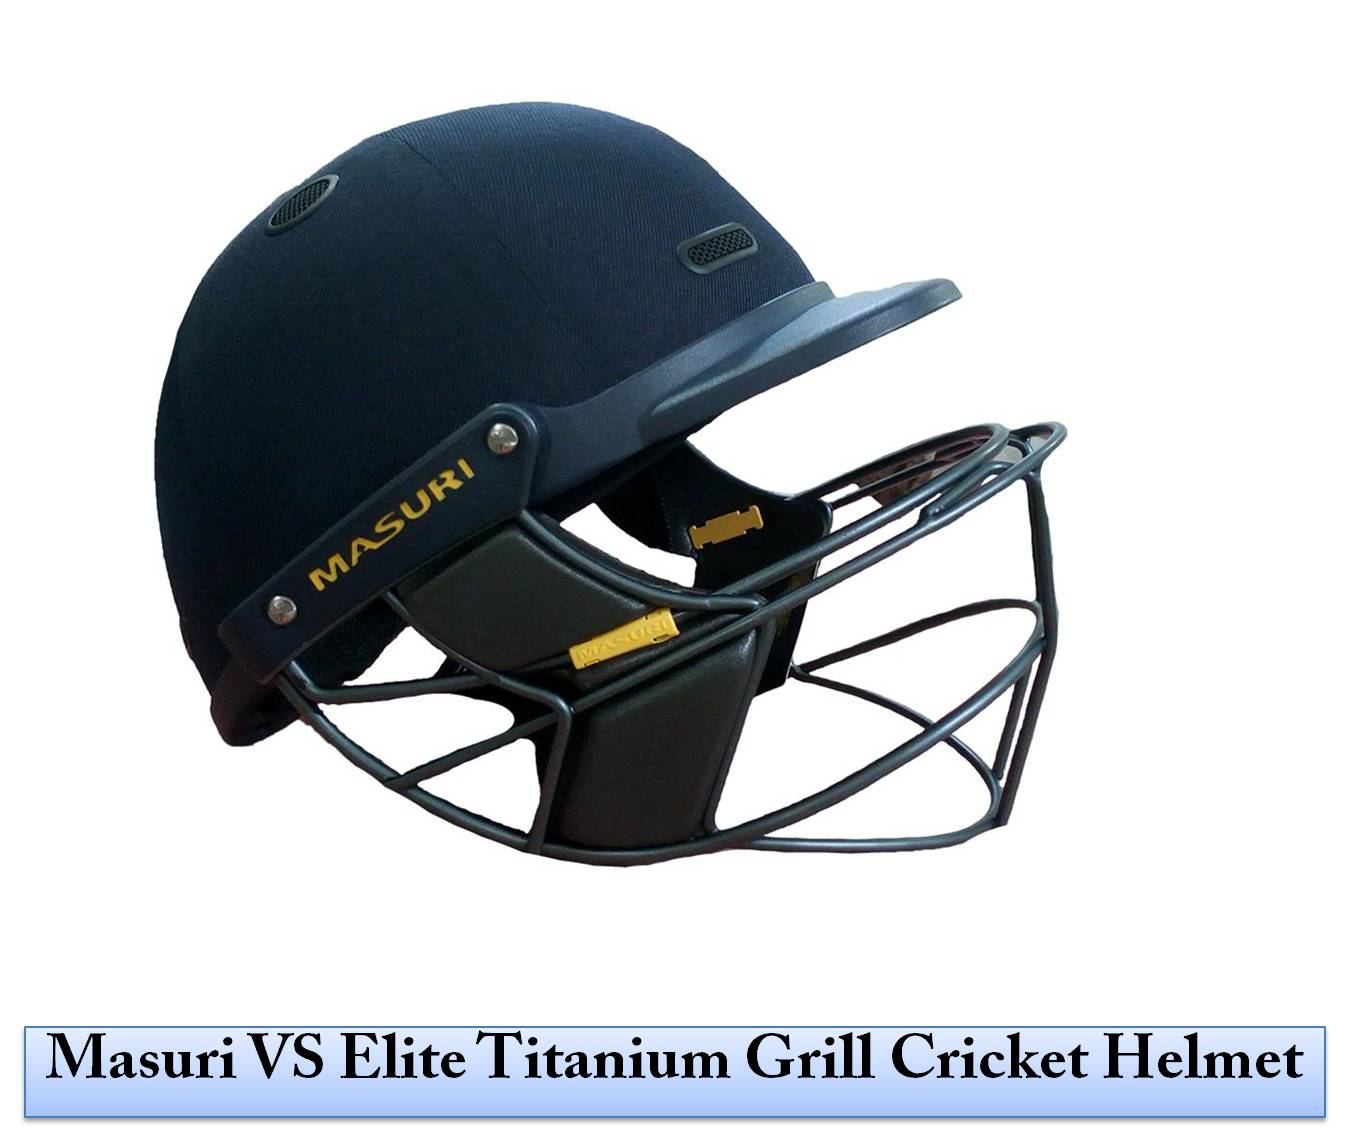 Masuri_VS_Elite_Titanium_Grill_Cricket_Helmet